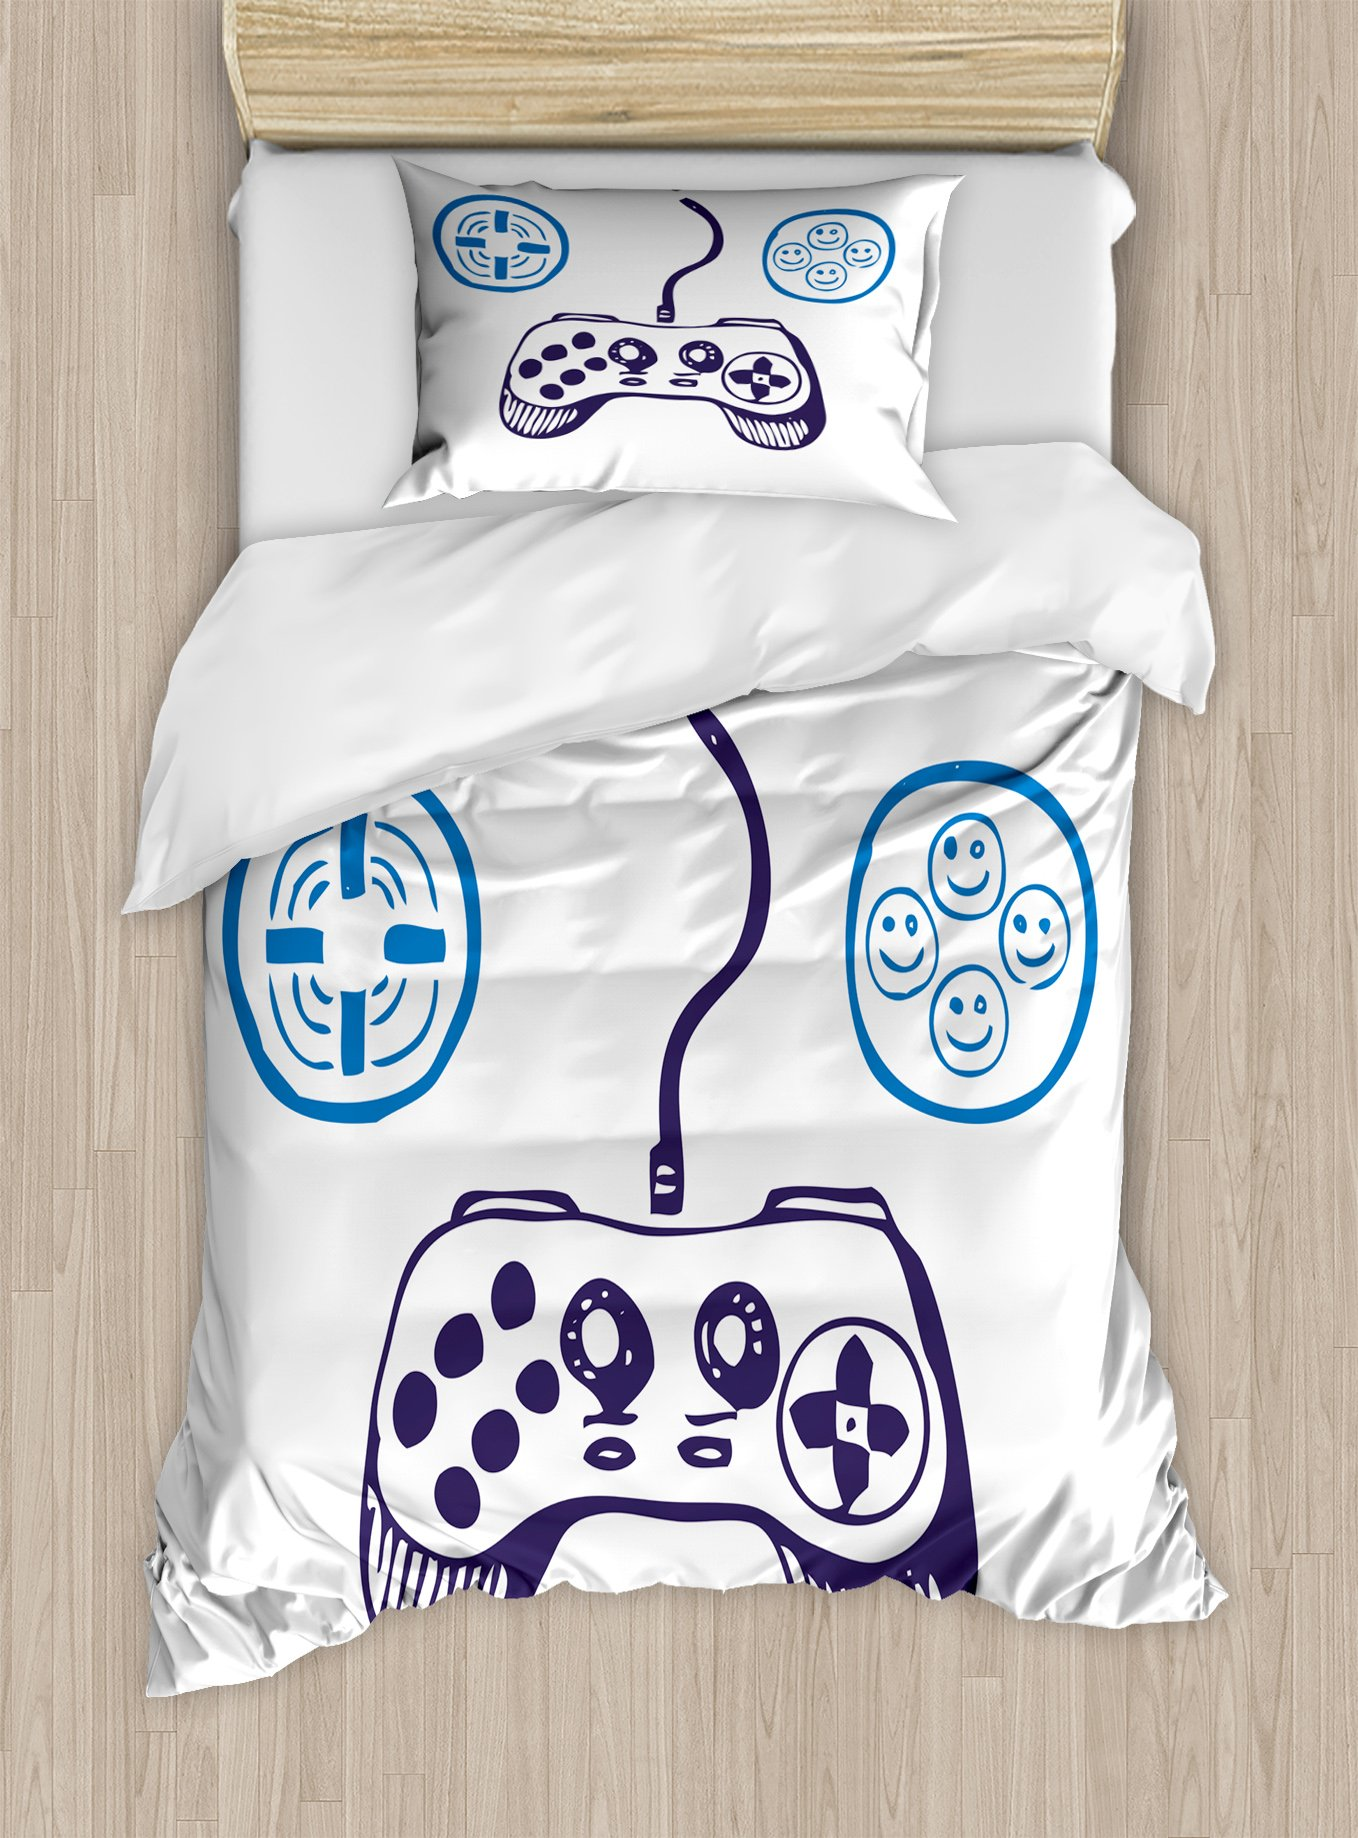 Lunarable Gamer Twin Size Duvet Cover Set, Sketch of Videogame Controller with D-Pad and Smiling Buttons Design, Decorative 2 Piece Bedding Set with 1 Pillow Sham, Azure Blue Purple White